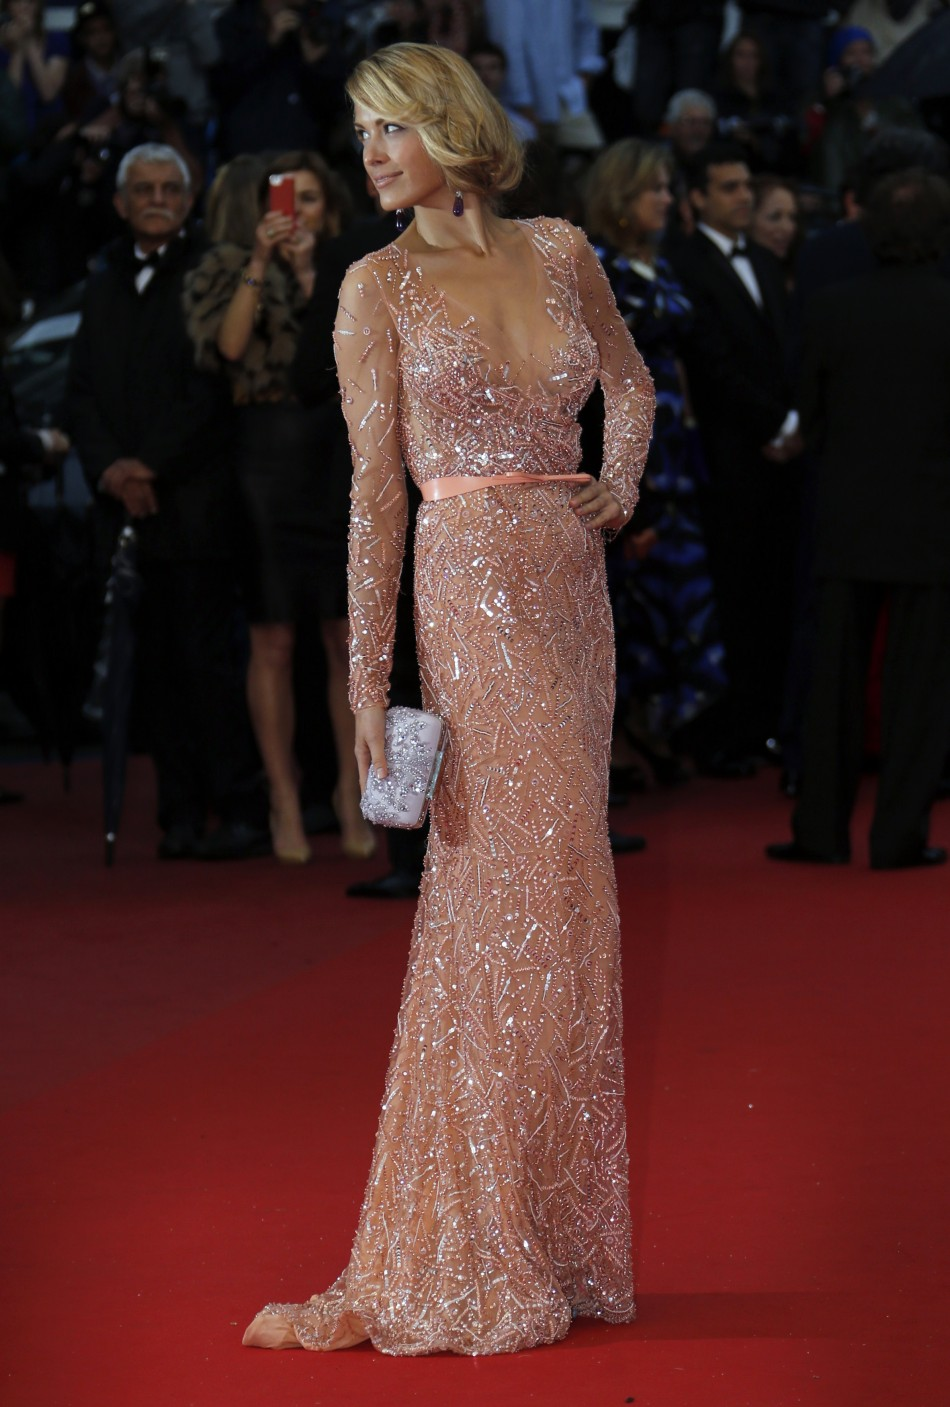 Model Petra Nemcova poses on the red carpet as she arrives for the screening of the film All is Lost during the 66th Cannes Film Festival in Cannes May 22, 2013.